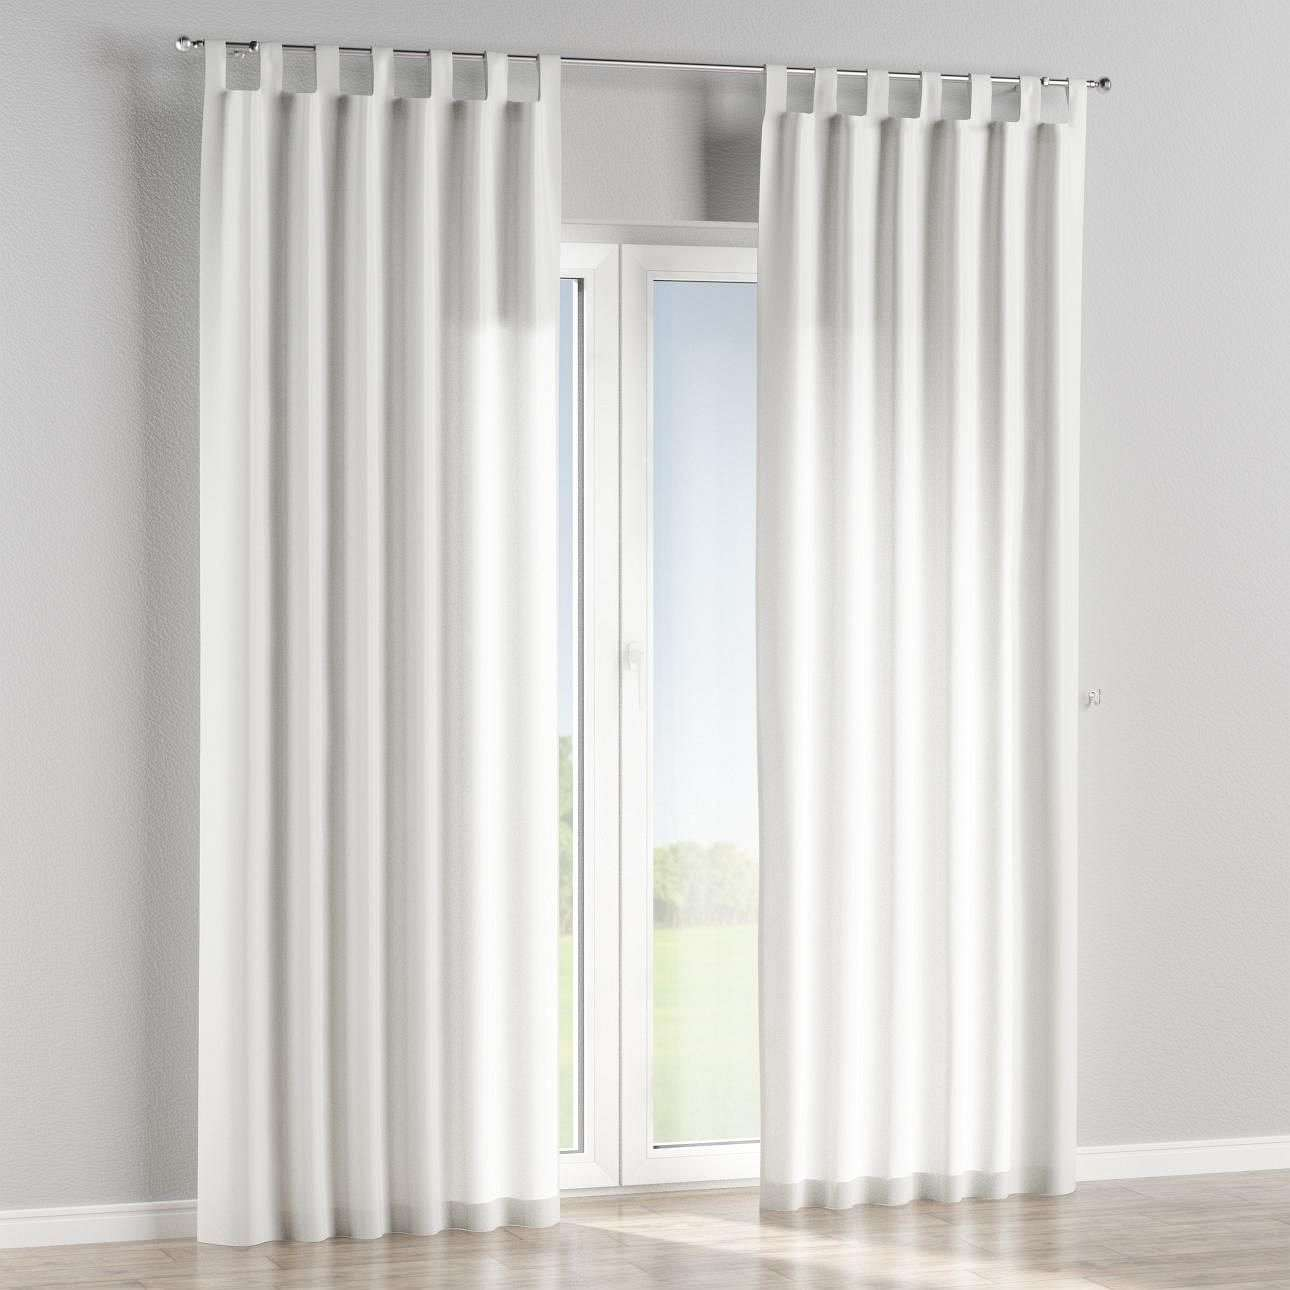 Tab top lined curtains in collection Bristol, fabric: 125-25